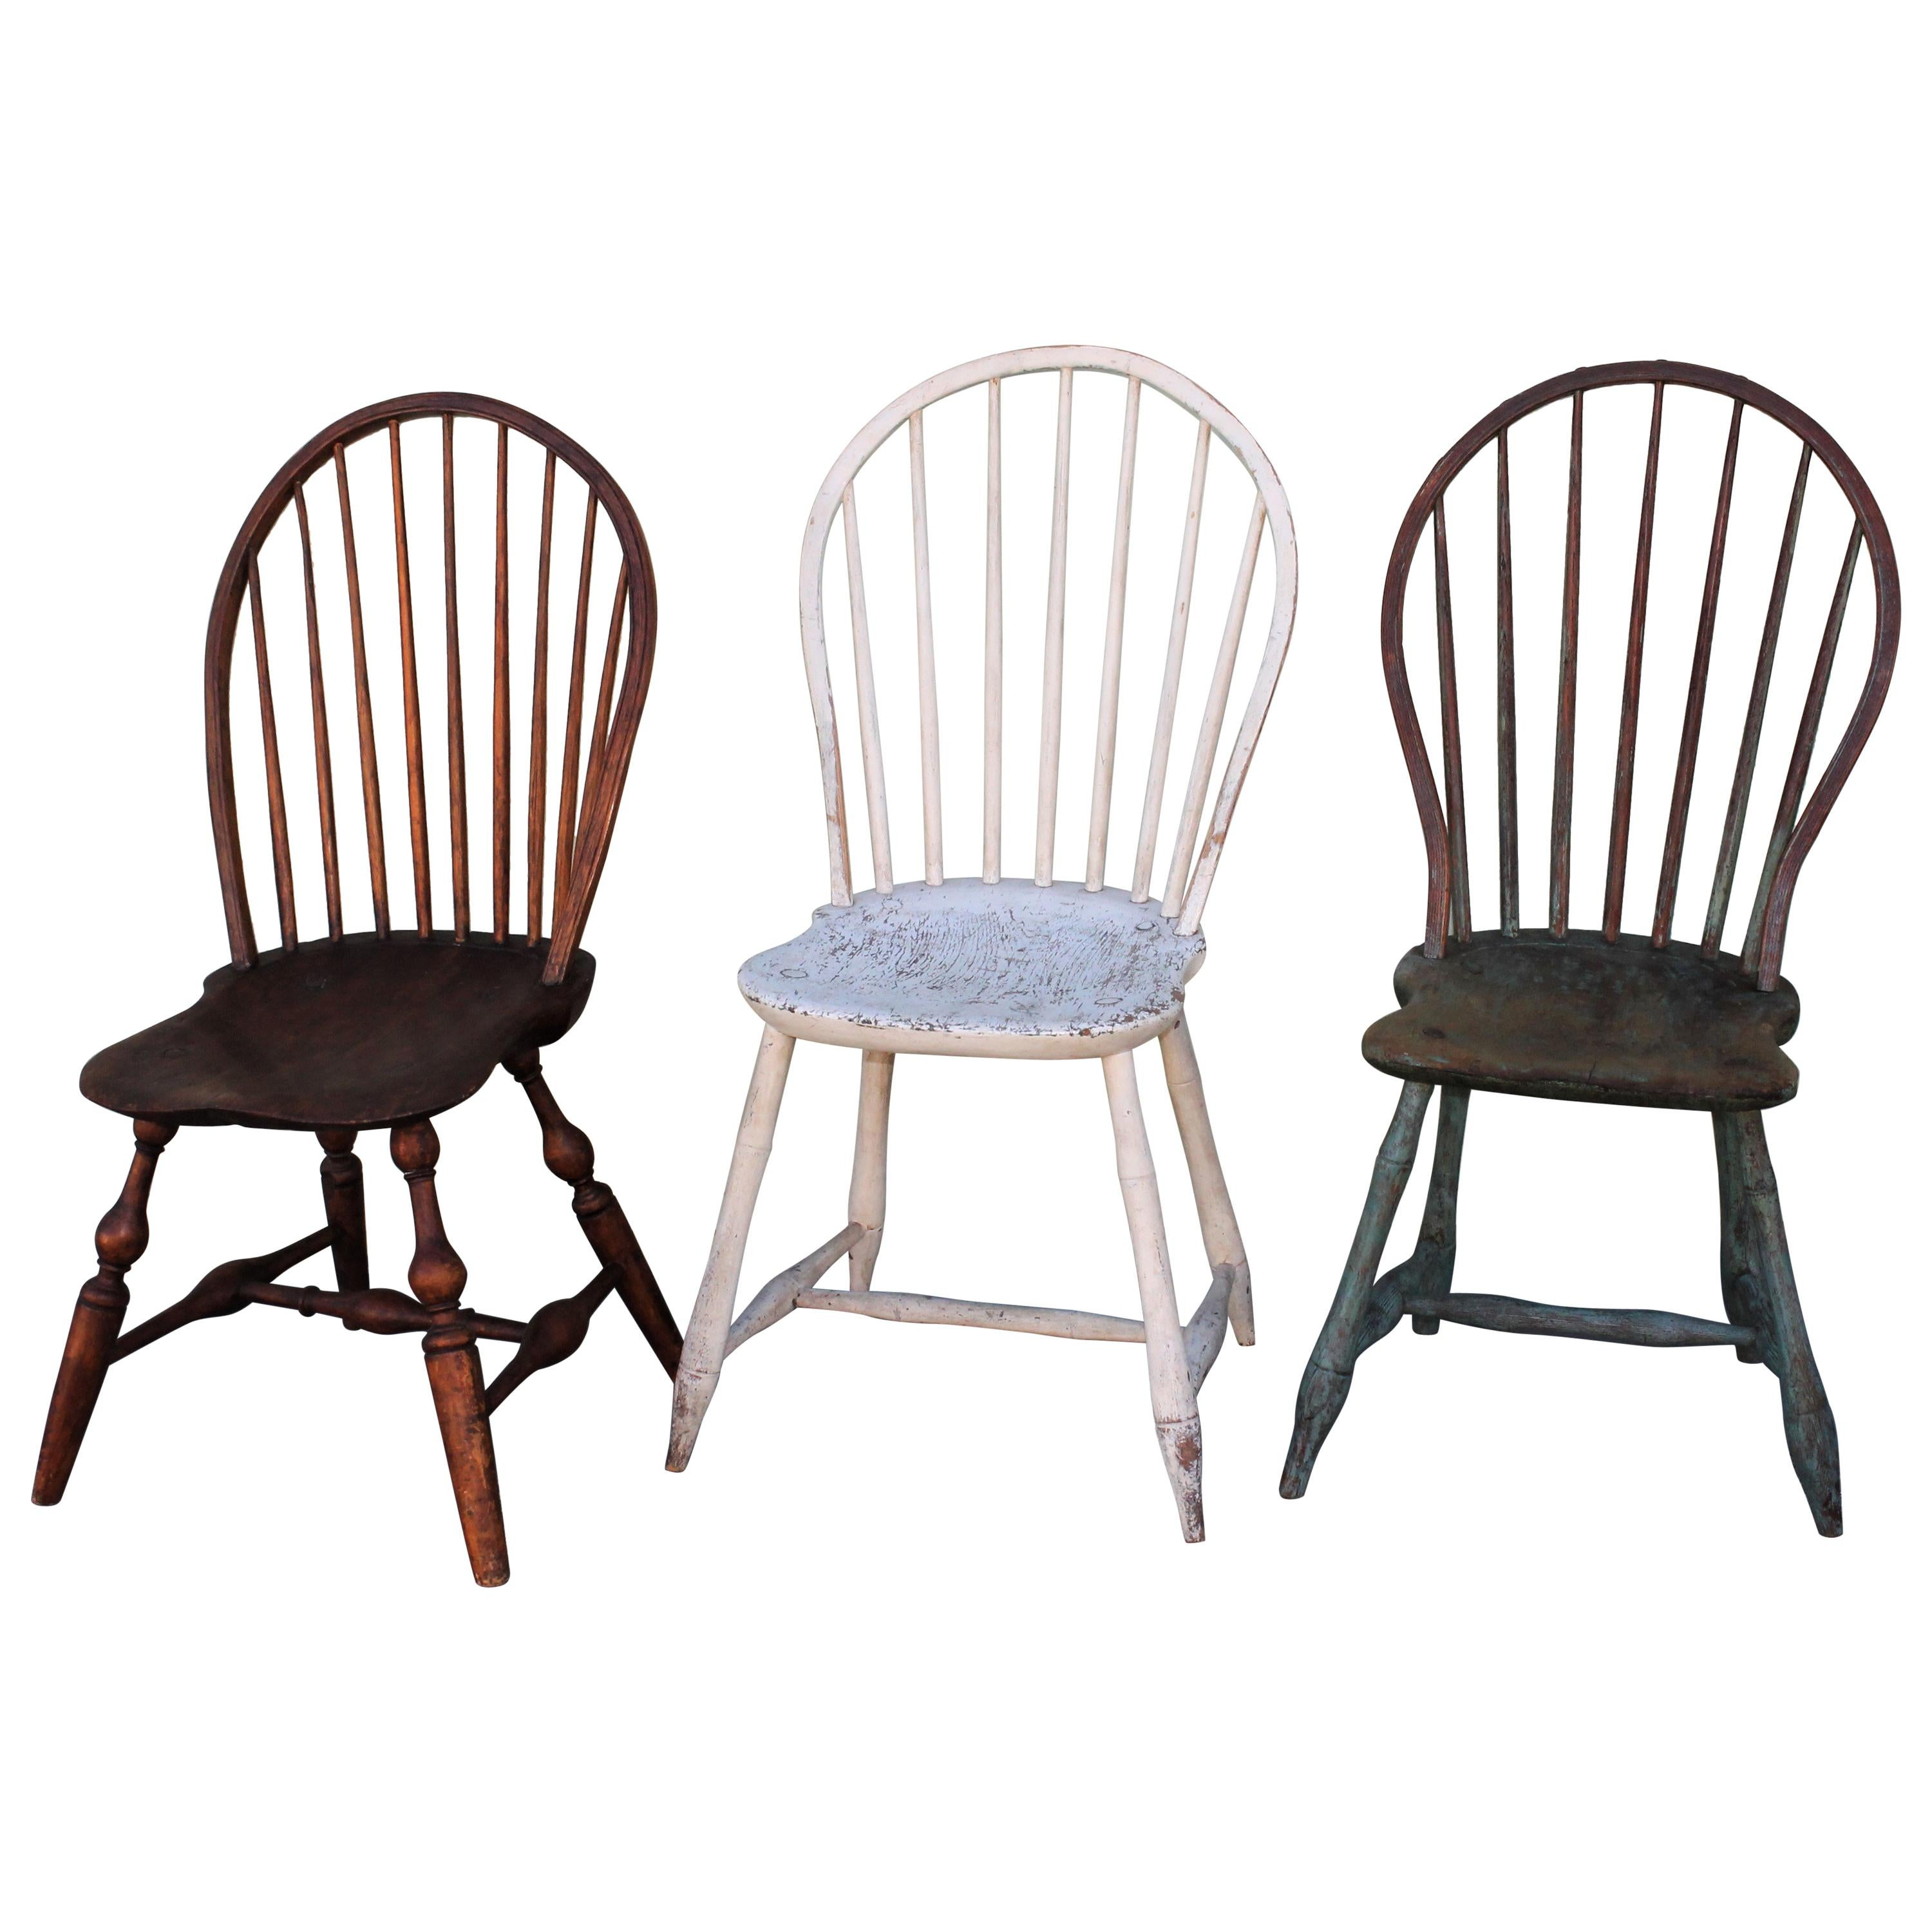 19th Century Windsor Chair Collection / 3